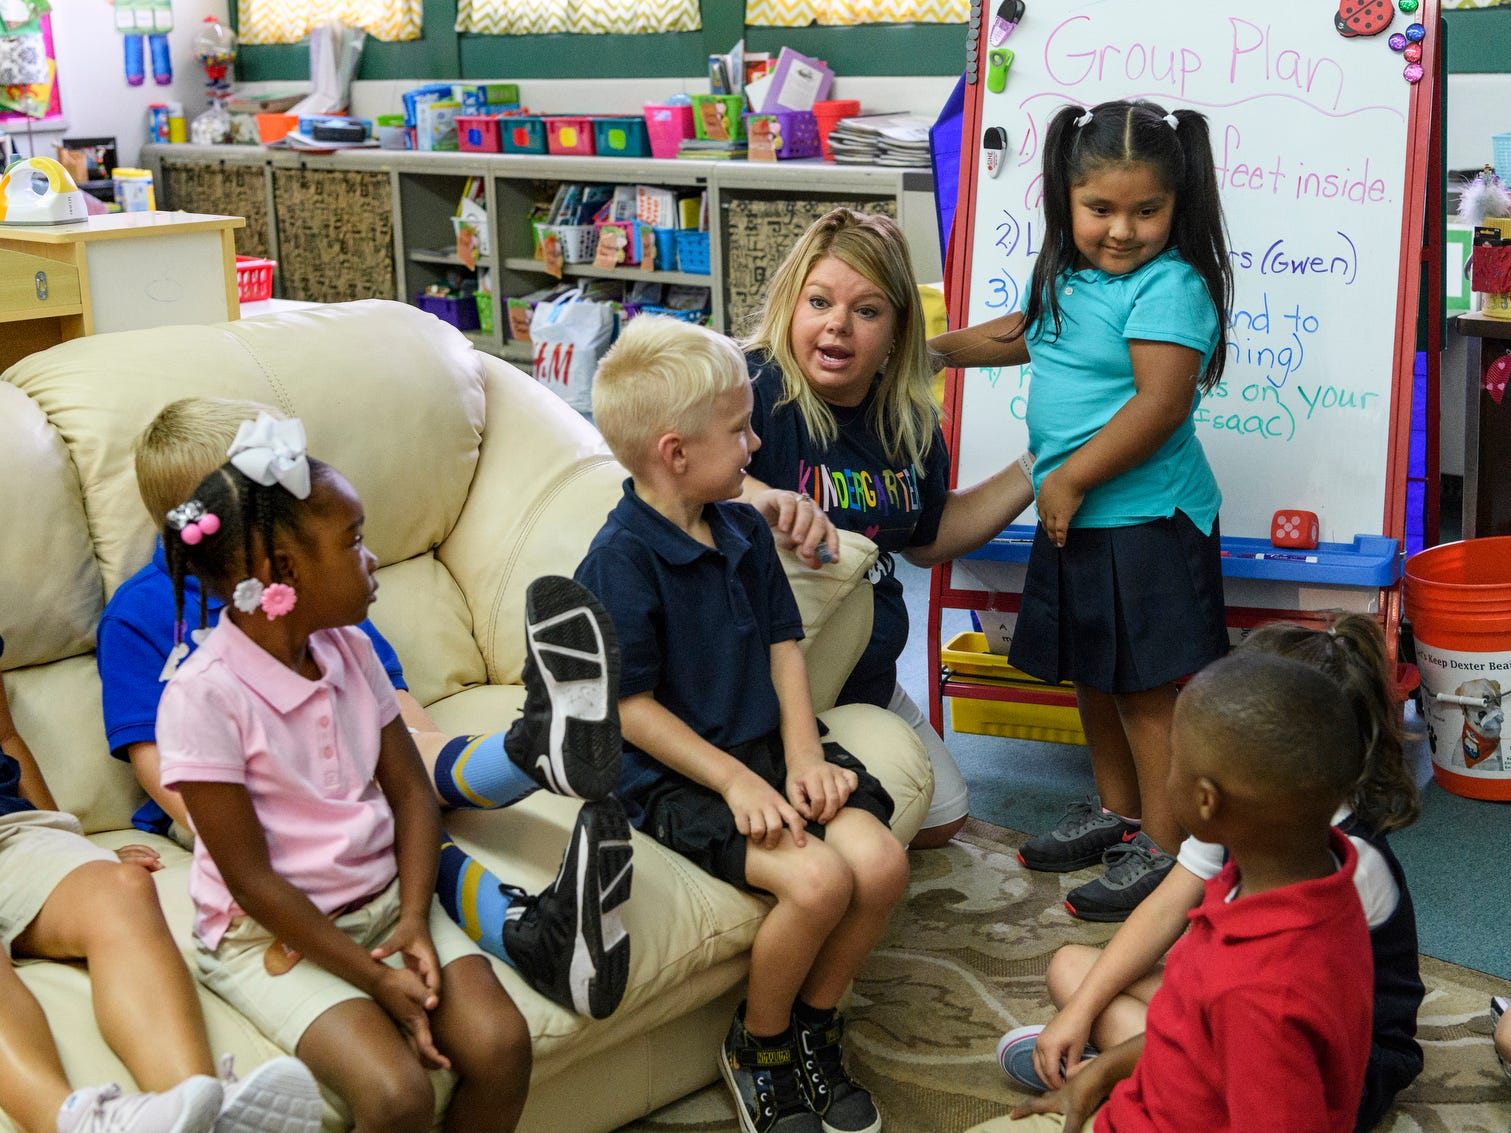 Kindergarten teacher Lyndsey Schneider, top left, talks about classroom rules with her students, including asking permission before giving a hug which she demonstrates with her student Melanie Zamora, top right, on the first day of school at Dexter Elementary School in Evansville, Ind., Wednesday, Aug. 8, 2018.